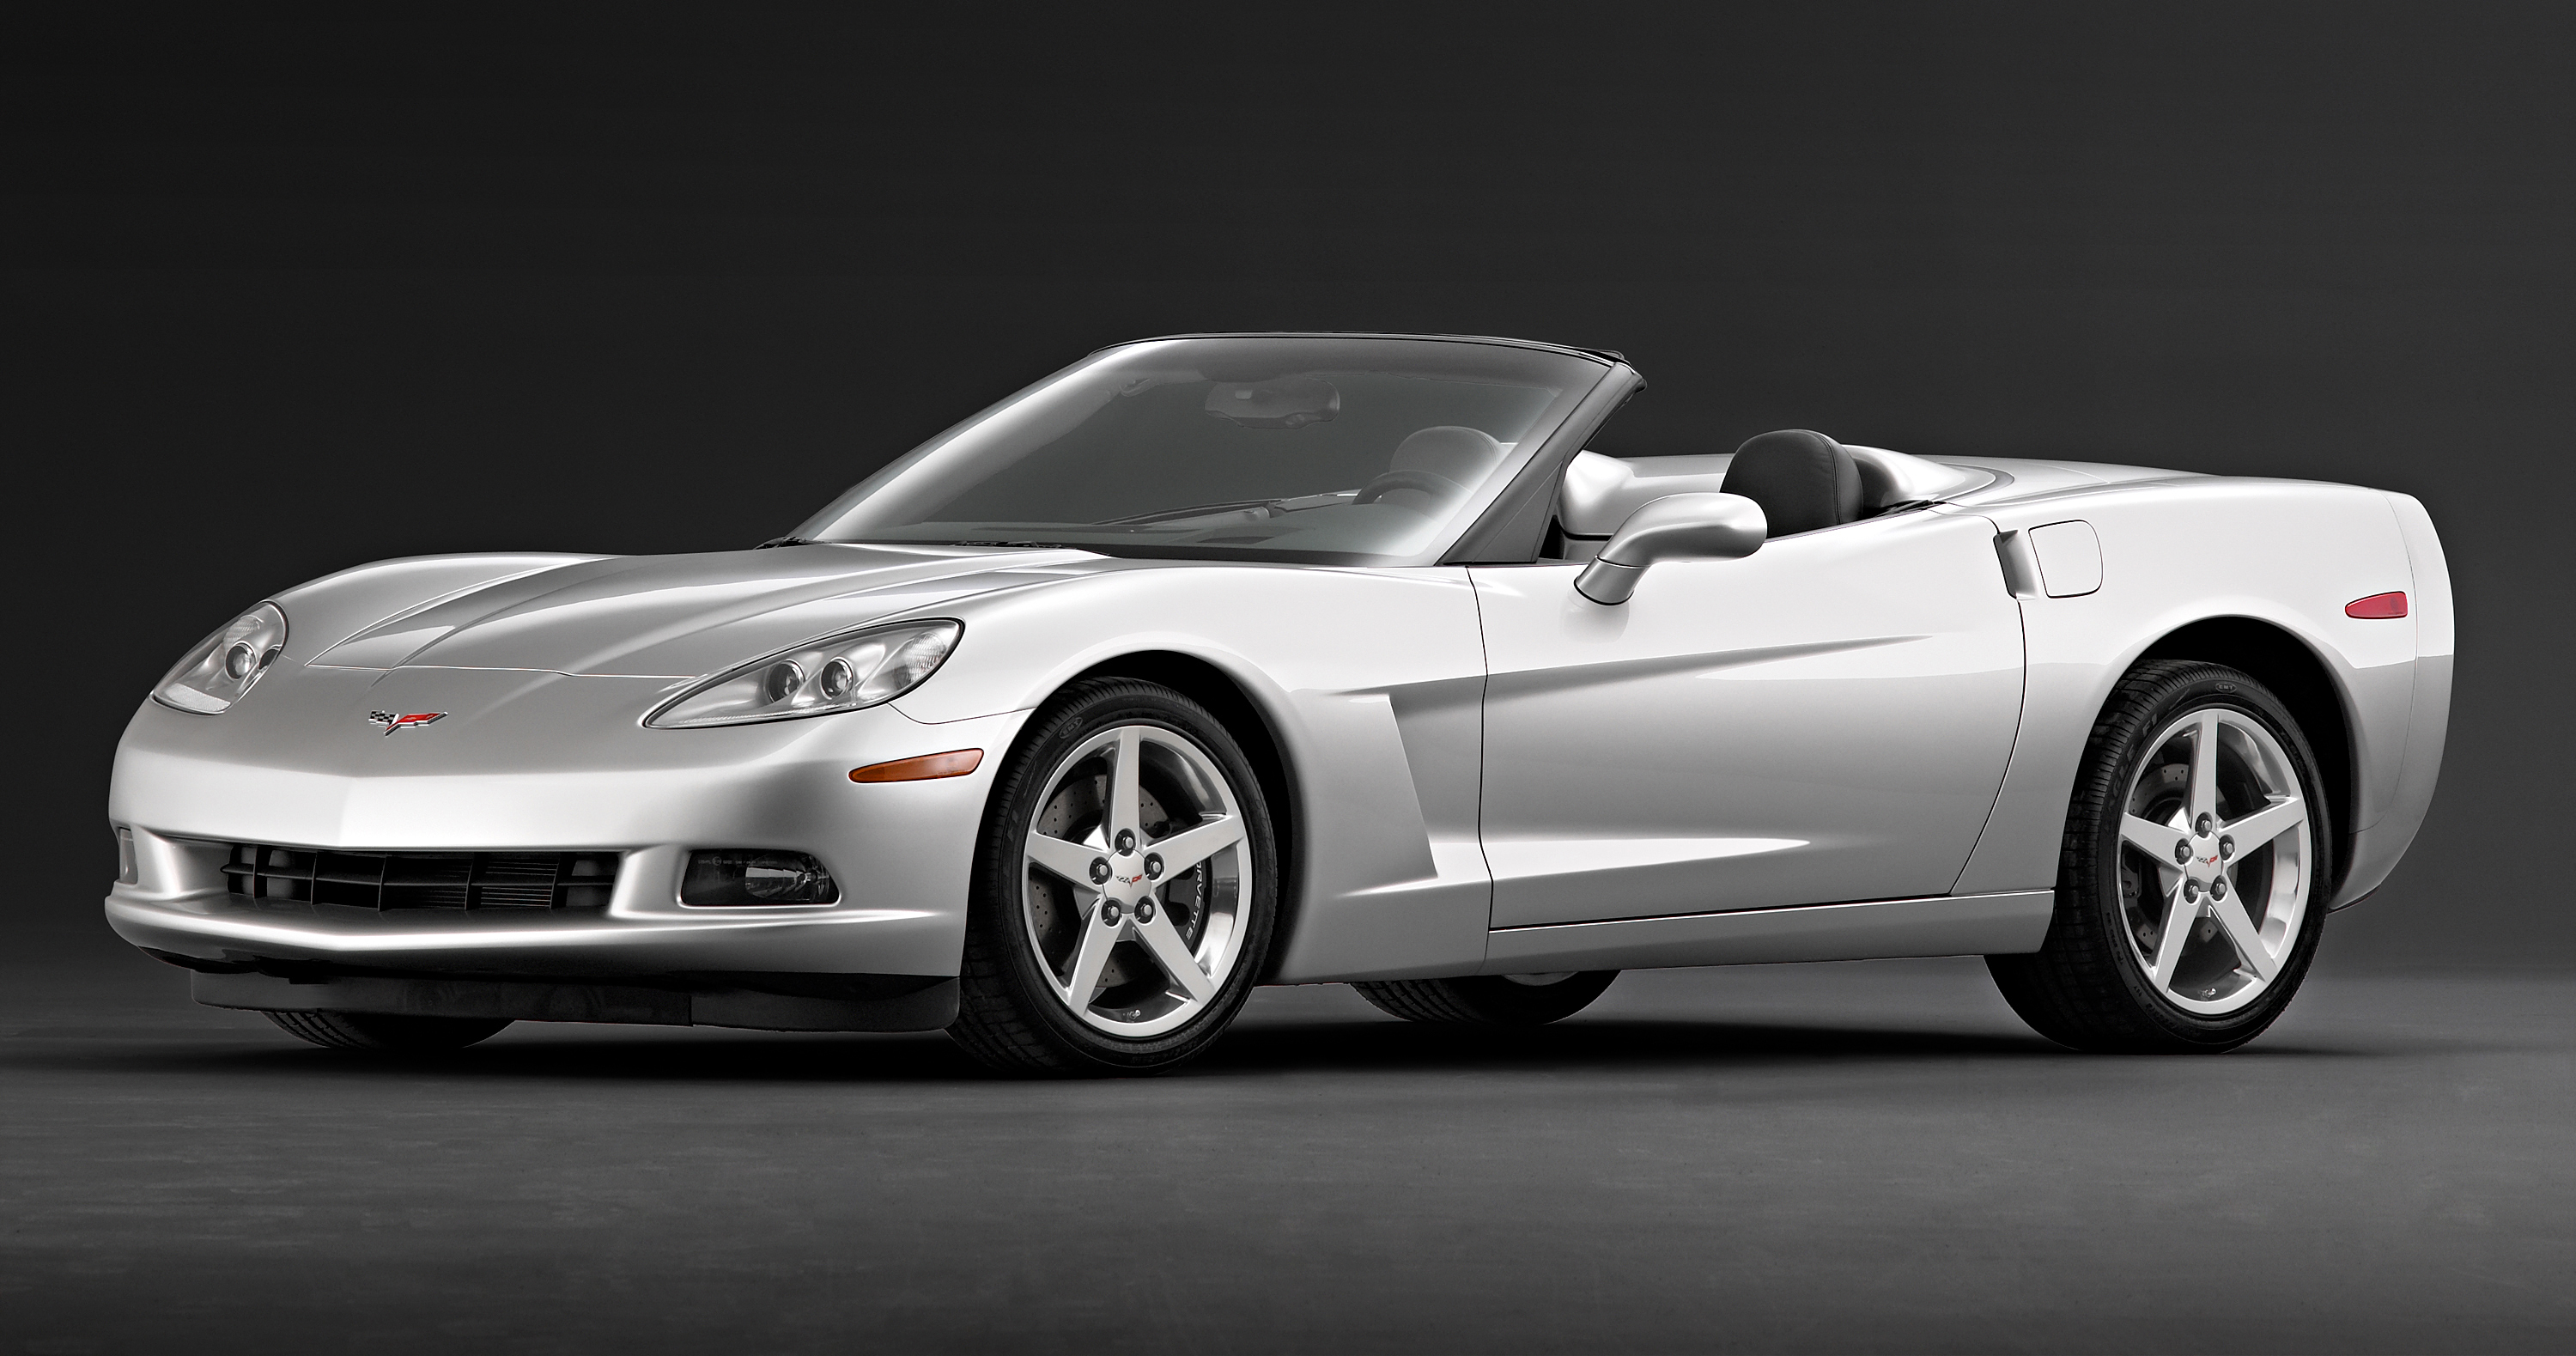 2005 Chevrolet Corvette 289137 gm announces five safety recalls  at n-0.co